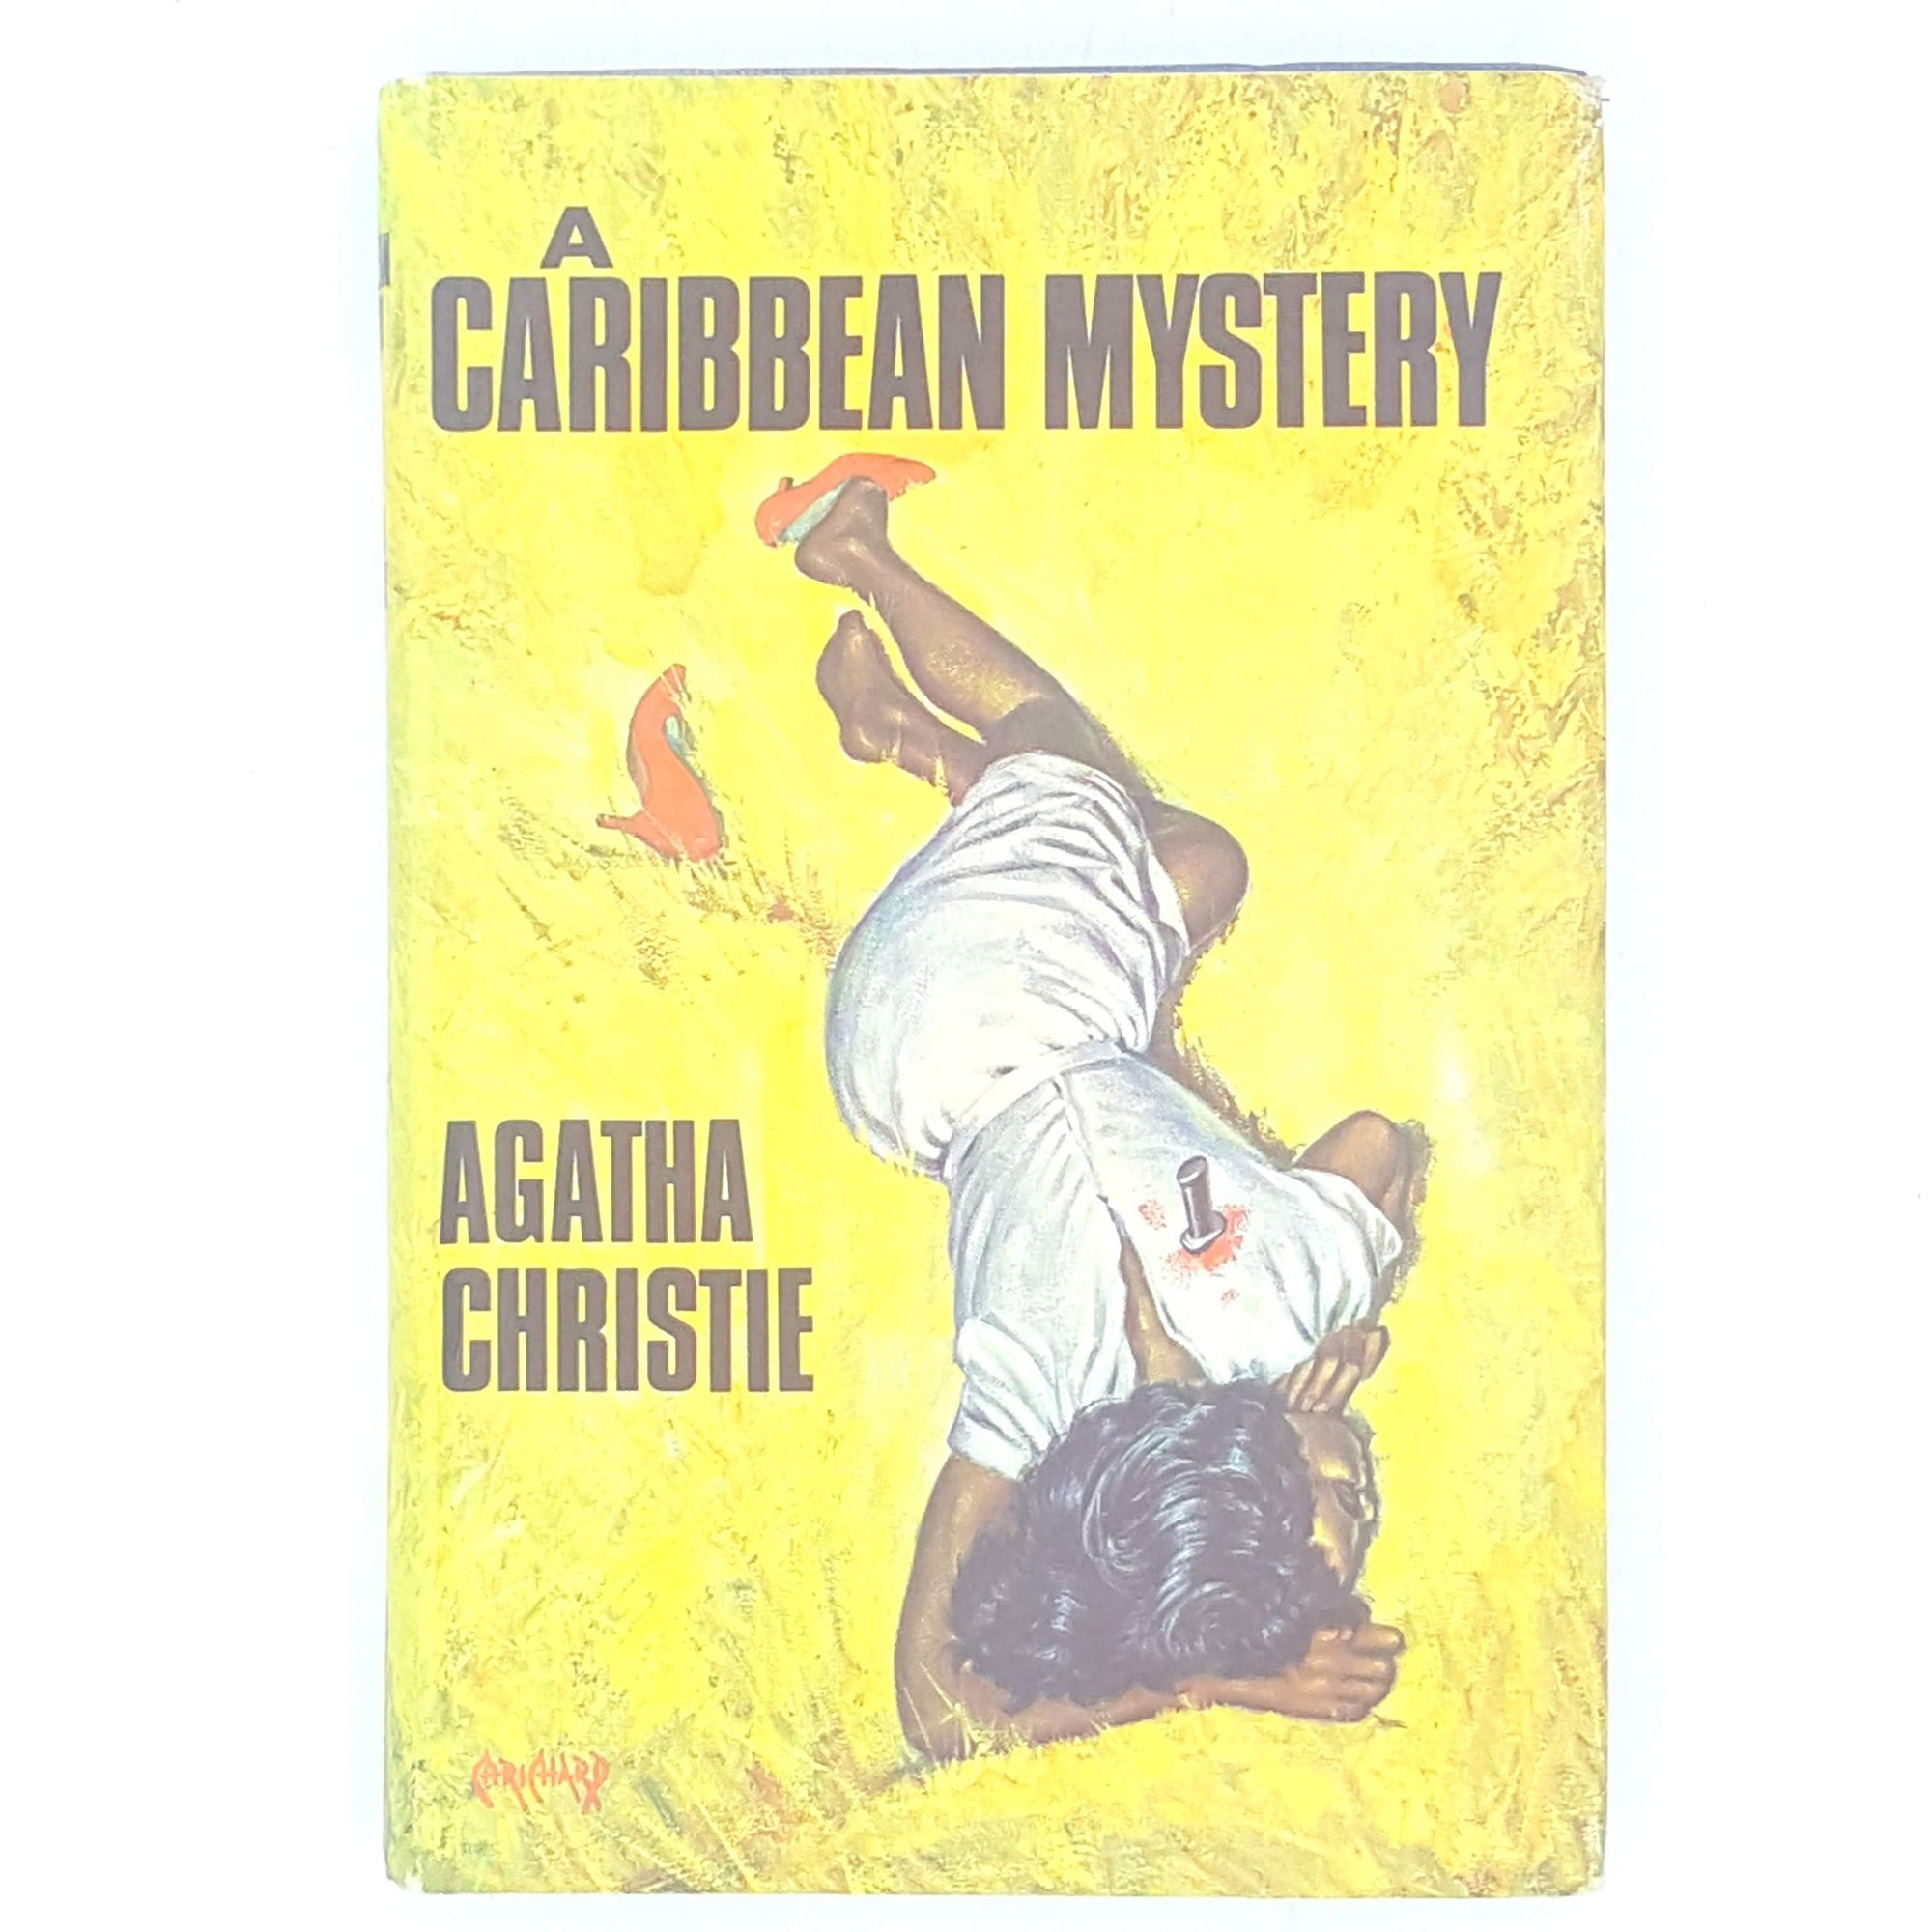 antique-miss-marple-caribbean-mystery-country-house-library-old-decorative-yellow-patterned-thrift-agatha-christie-vintage-books-